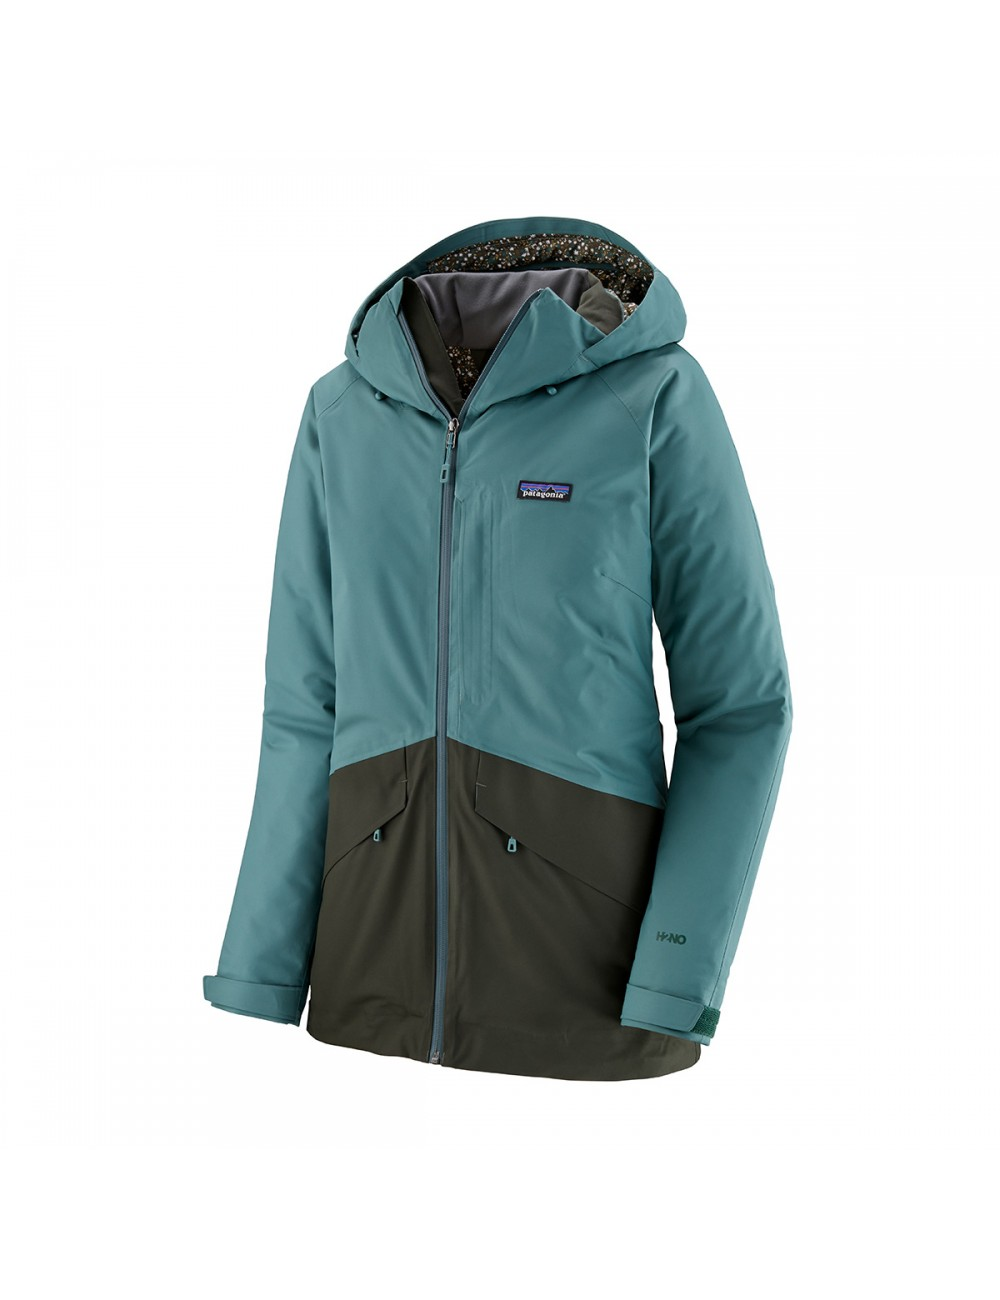 Patagonia Insulated Snowbelle Jacket - Green_13282